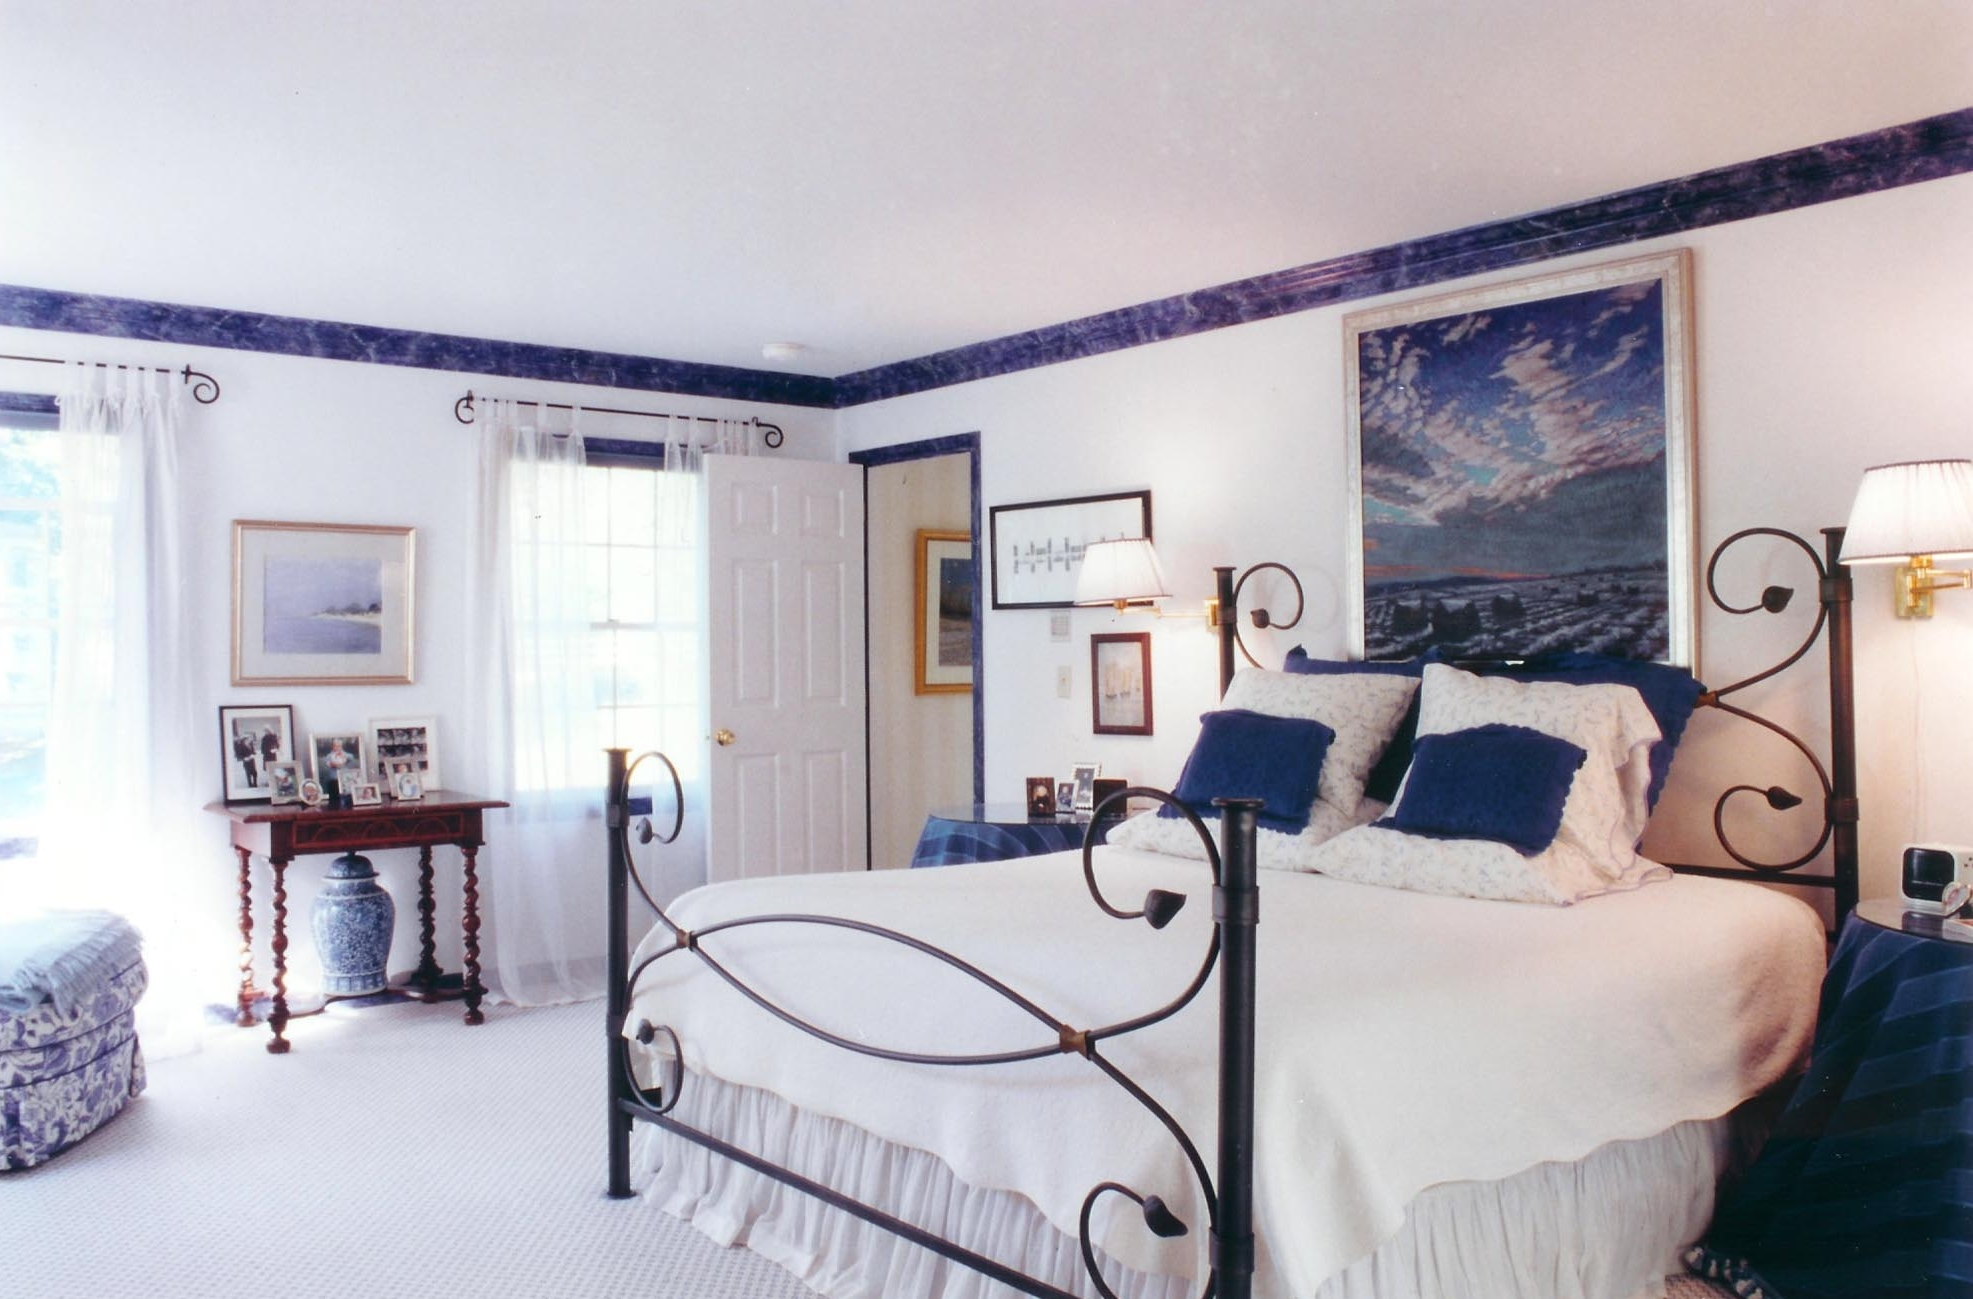 Bright bedroom with white beddings and paintings on the wall